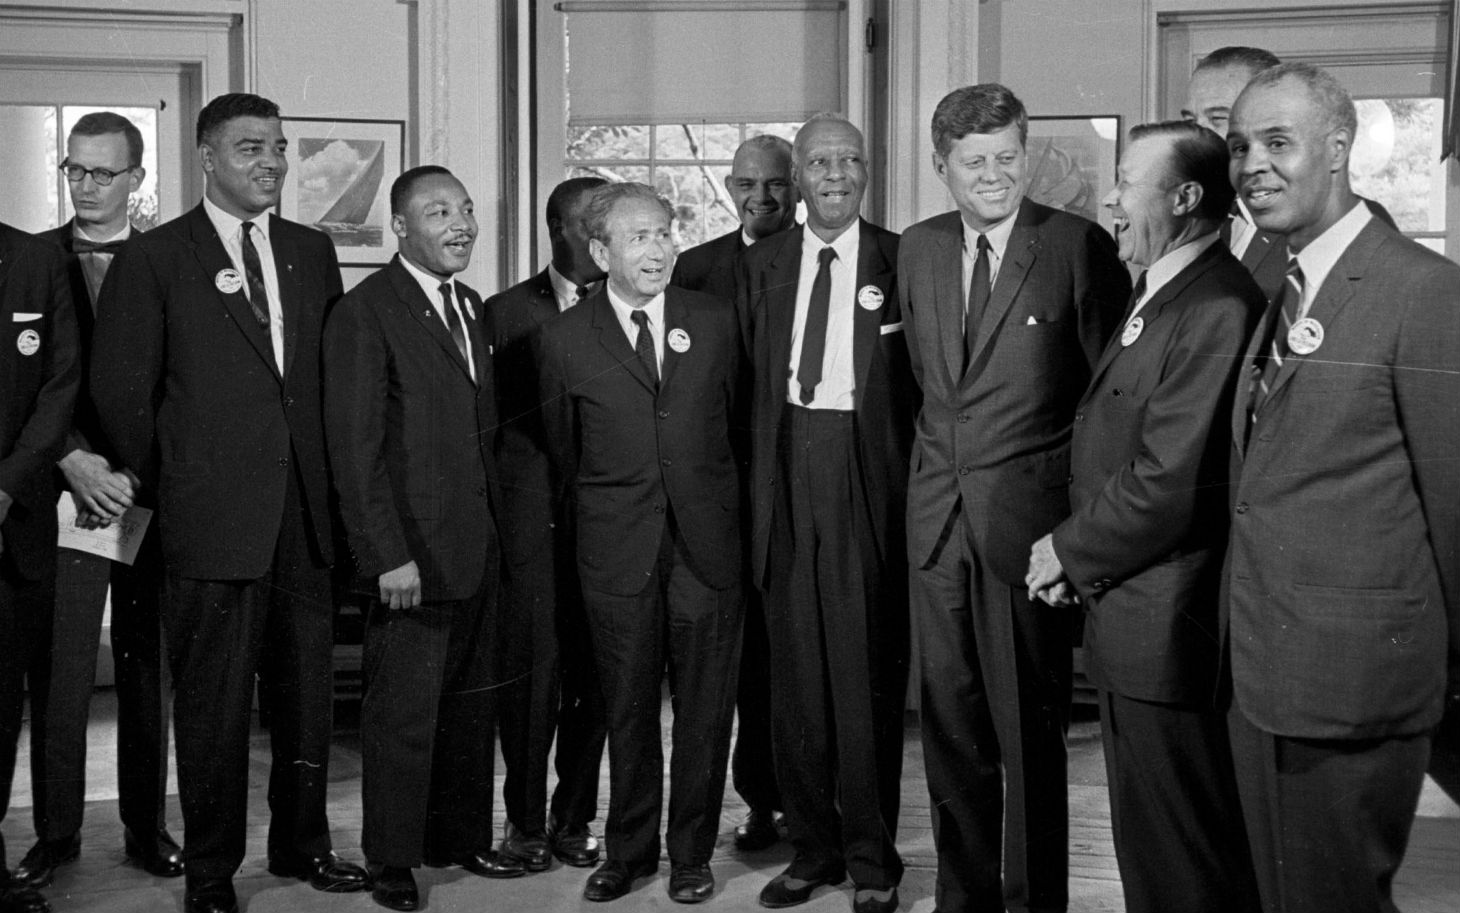 discuss jfk and the civil rights Fifty years later, kennedy biographers and old colleagues reflect on his evolution on advocating for civil rights jfk: civil rights leader or bystander.